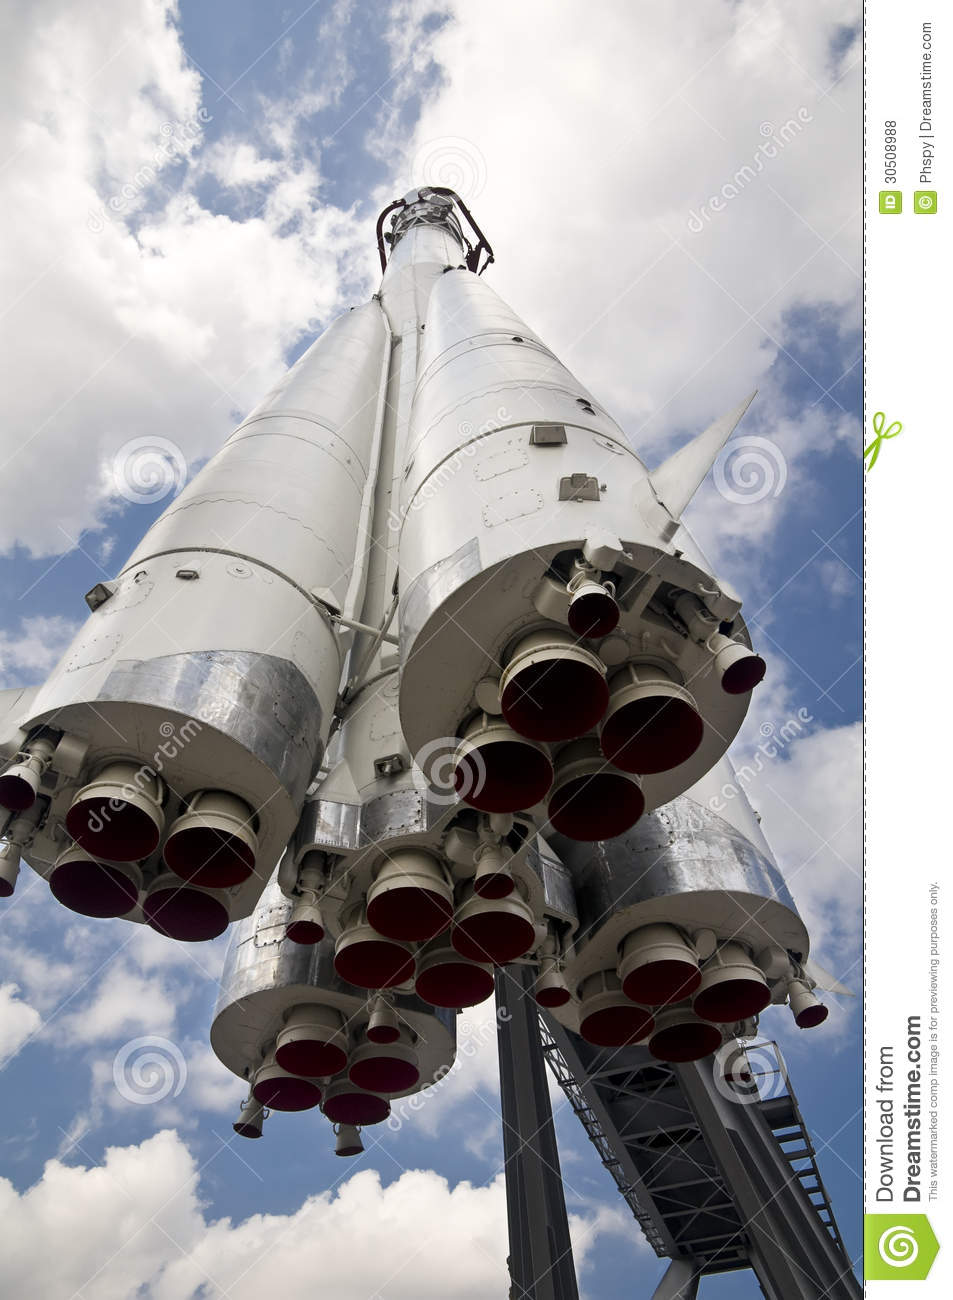 russian space ship - photo #3